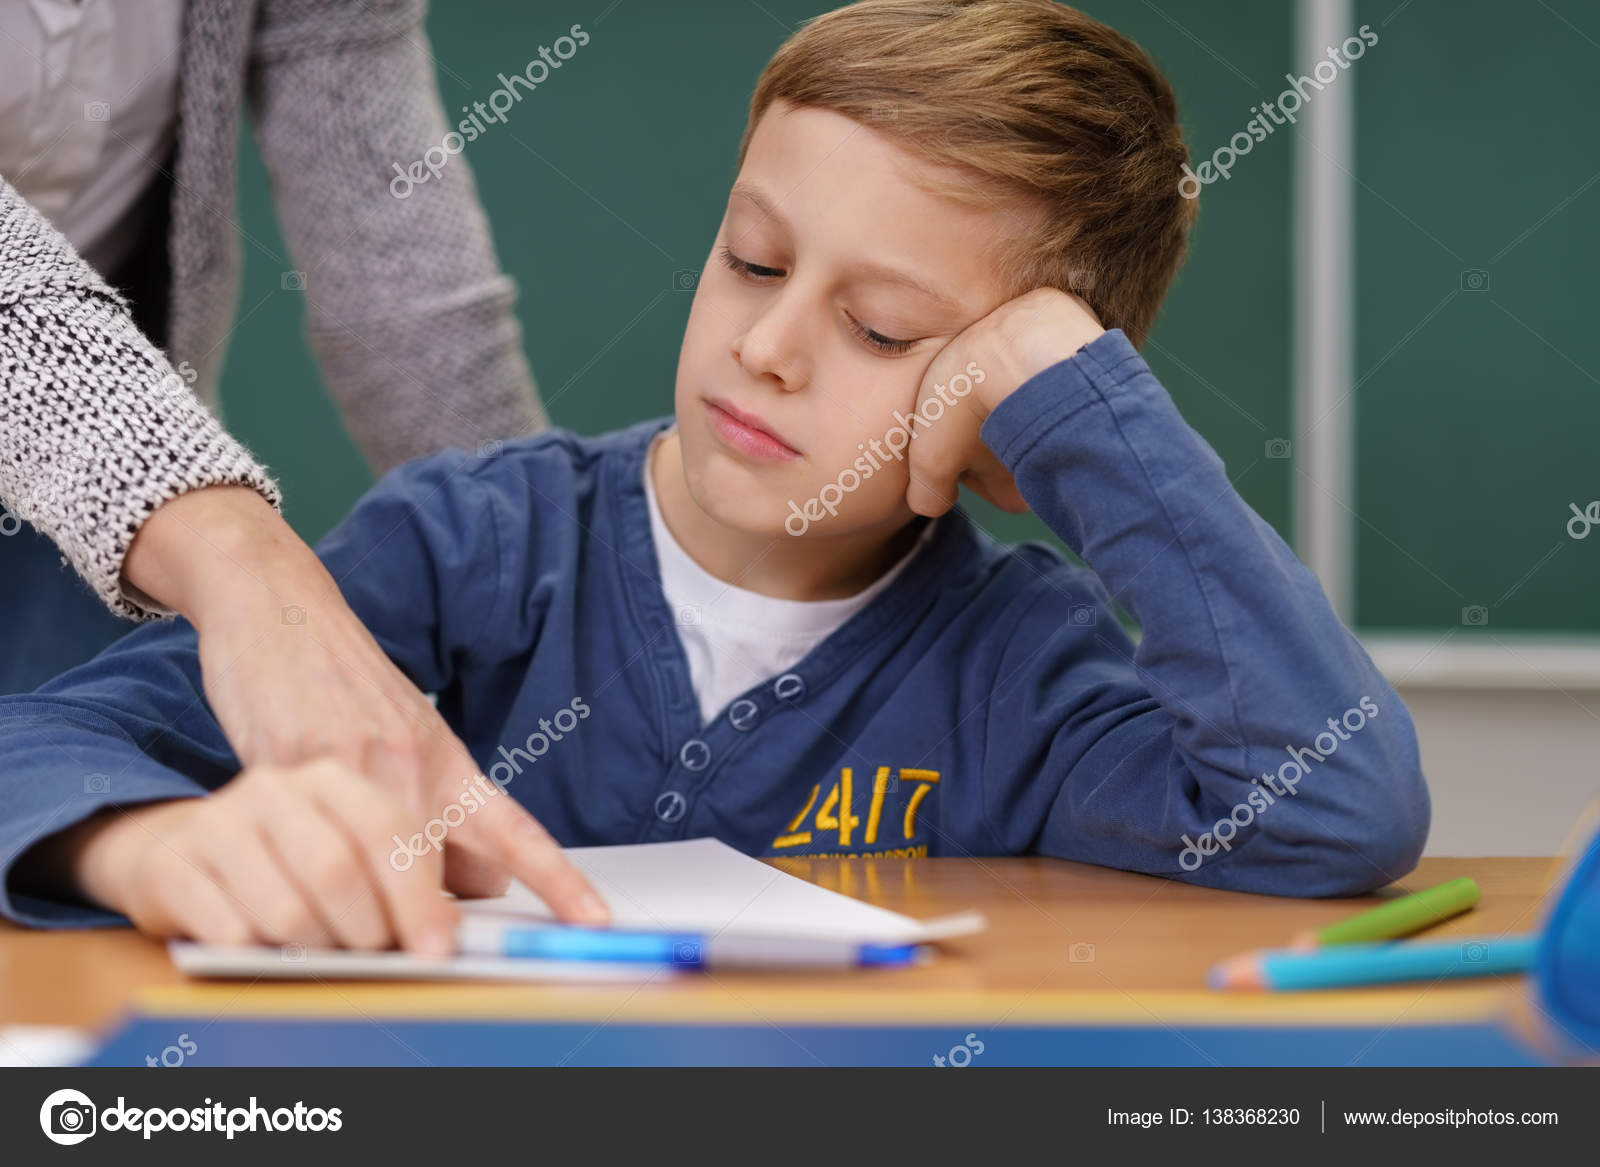 the youngster sitting behind the teachers desk